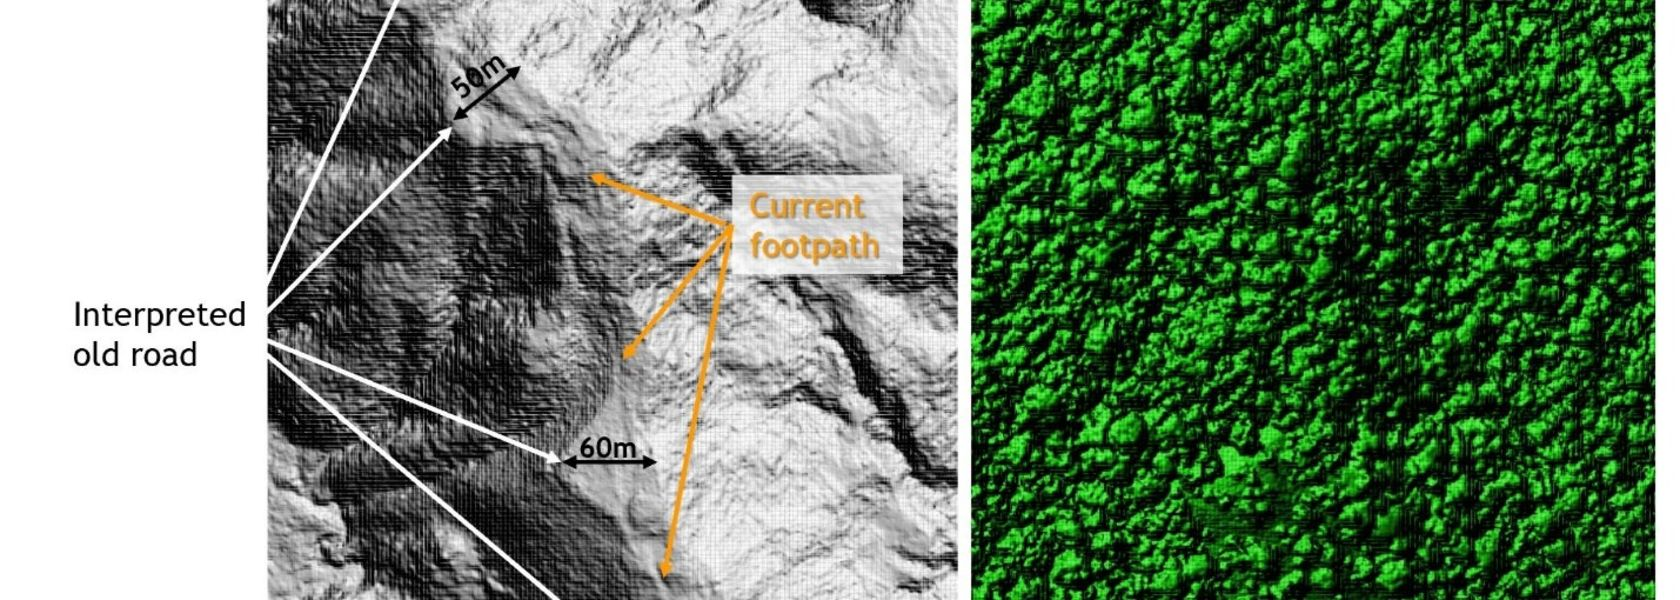 Aurania shares up on LiDAR image of missing road